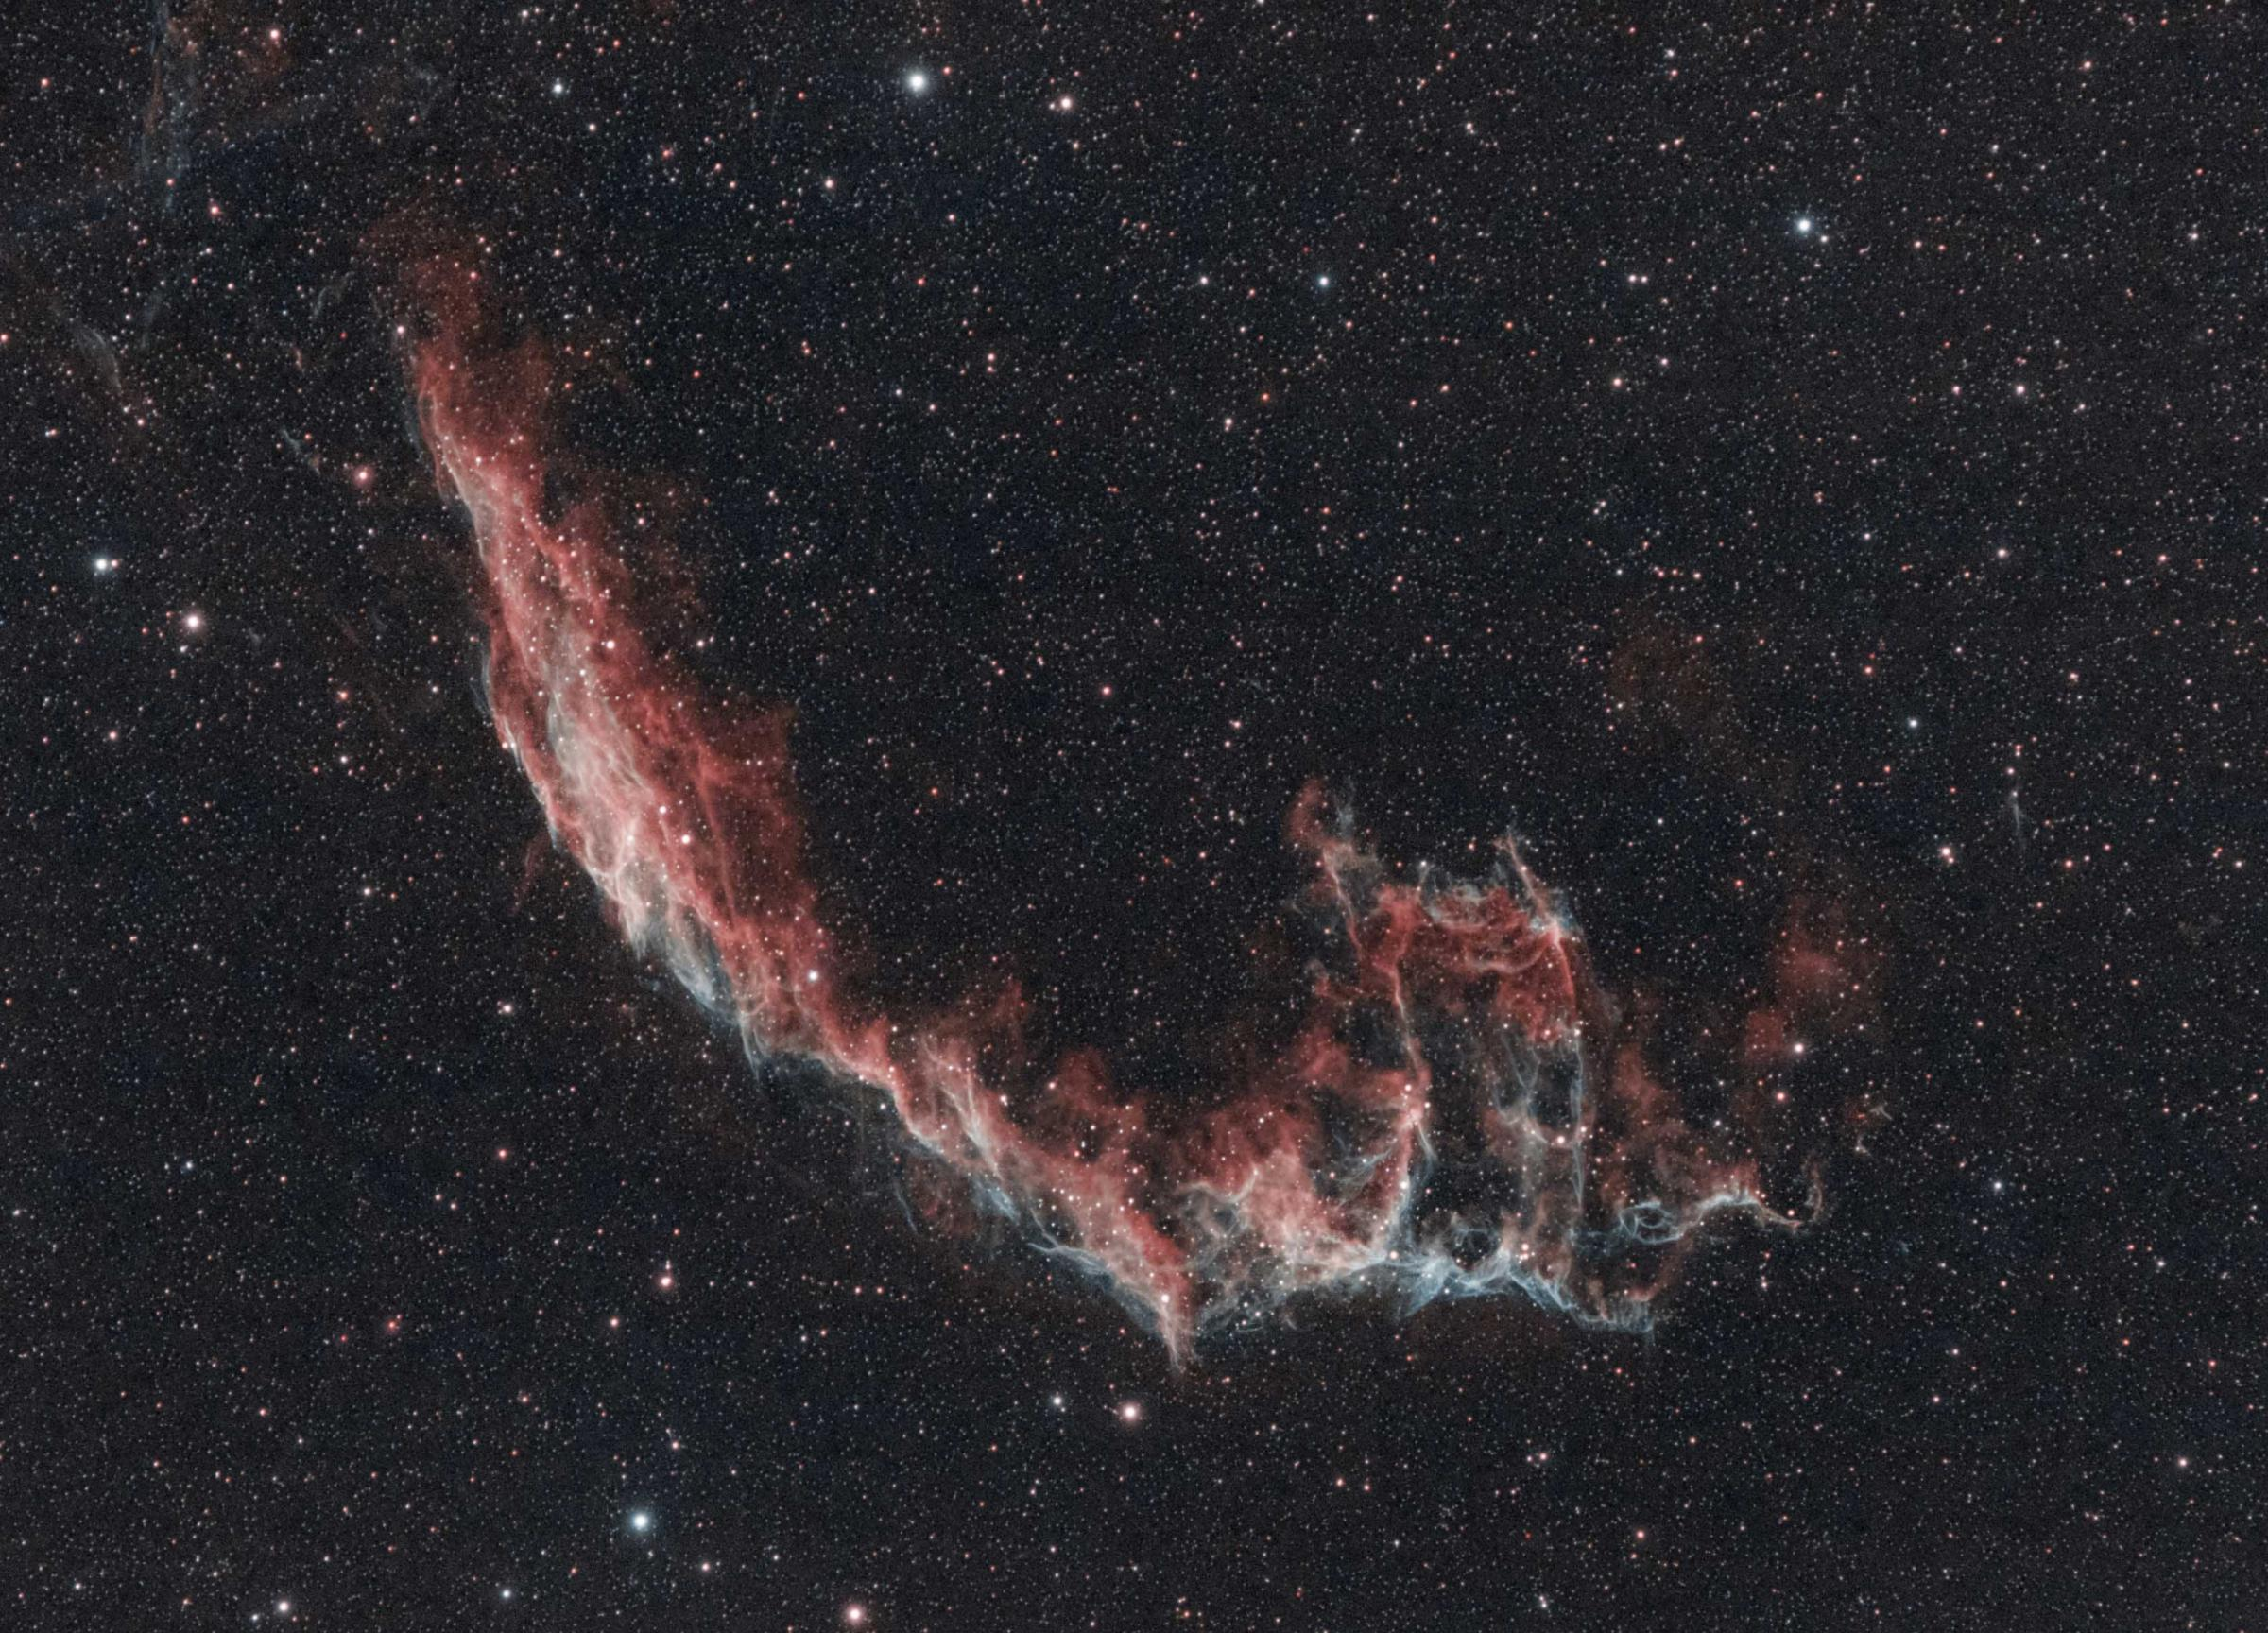 The Veil Nebula, a huge, feathery cloud of heated gas and dust in the constellation Cygnus - pictured by 16-year-old Scottish astro-photographer Helena Cochrane